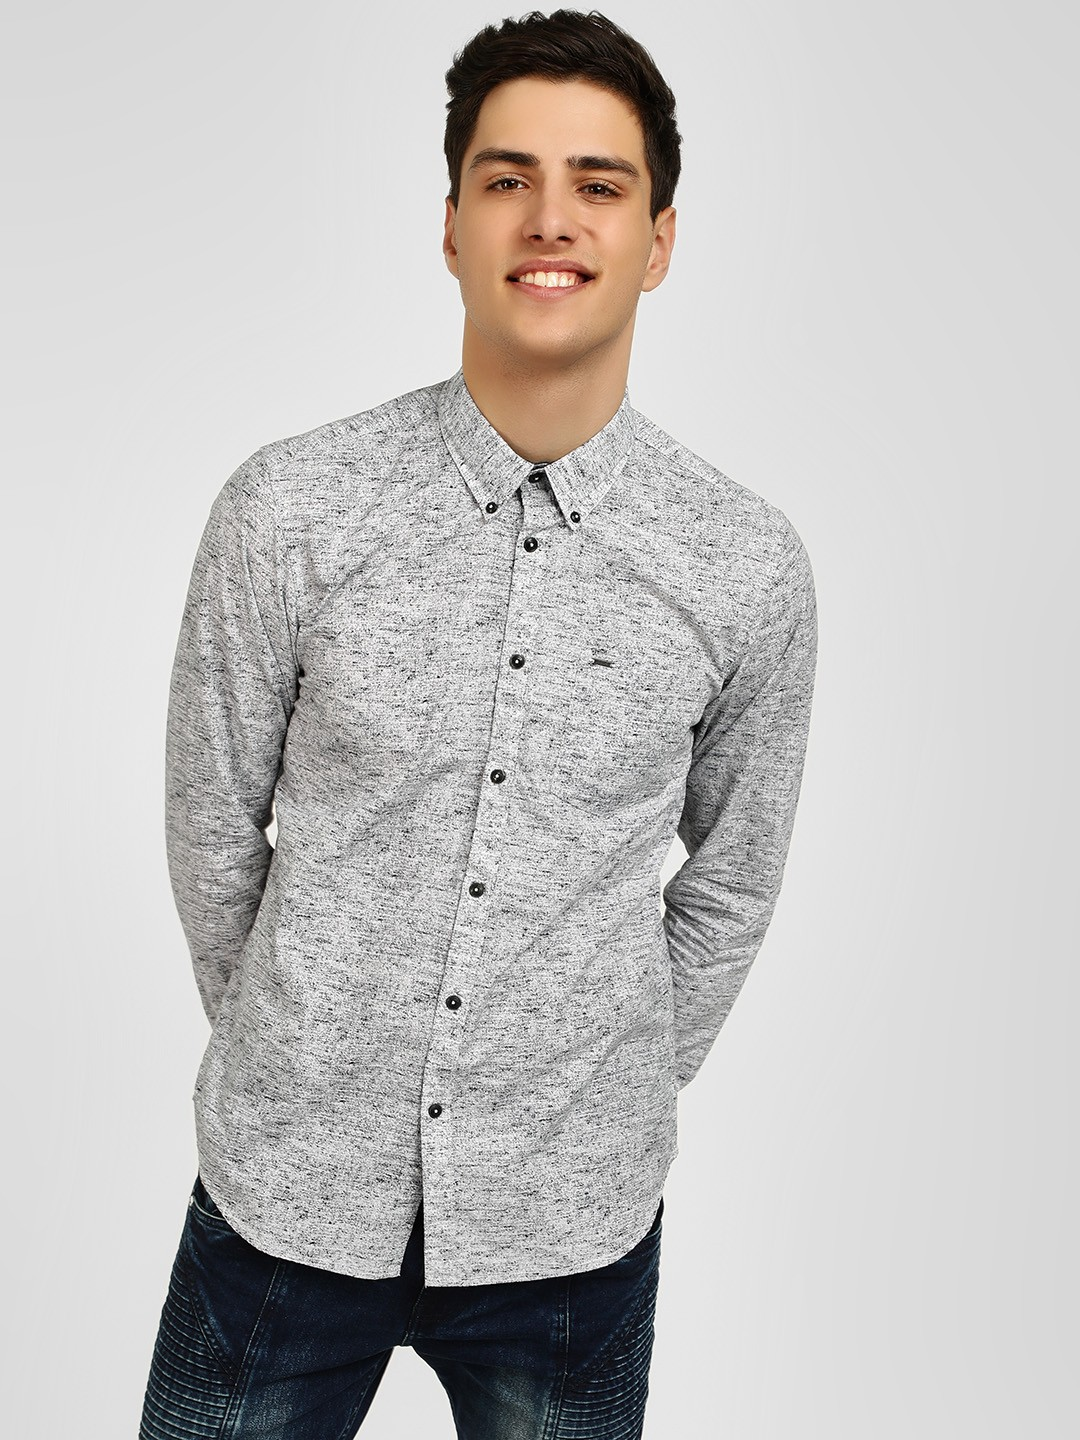 Lee Cooper Grey All Over Printed Shirt 1